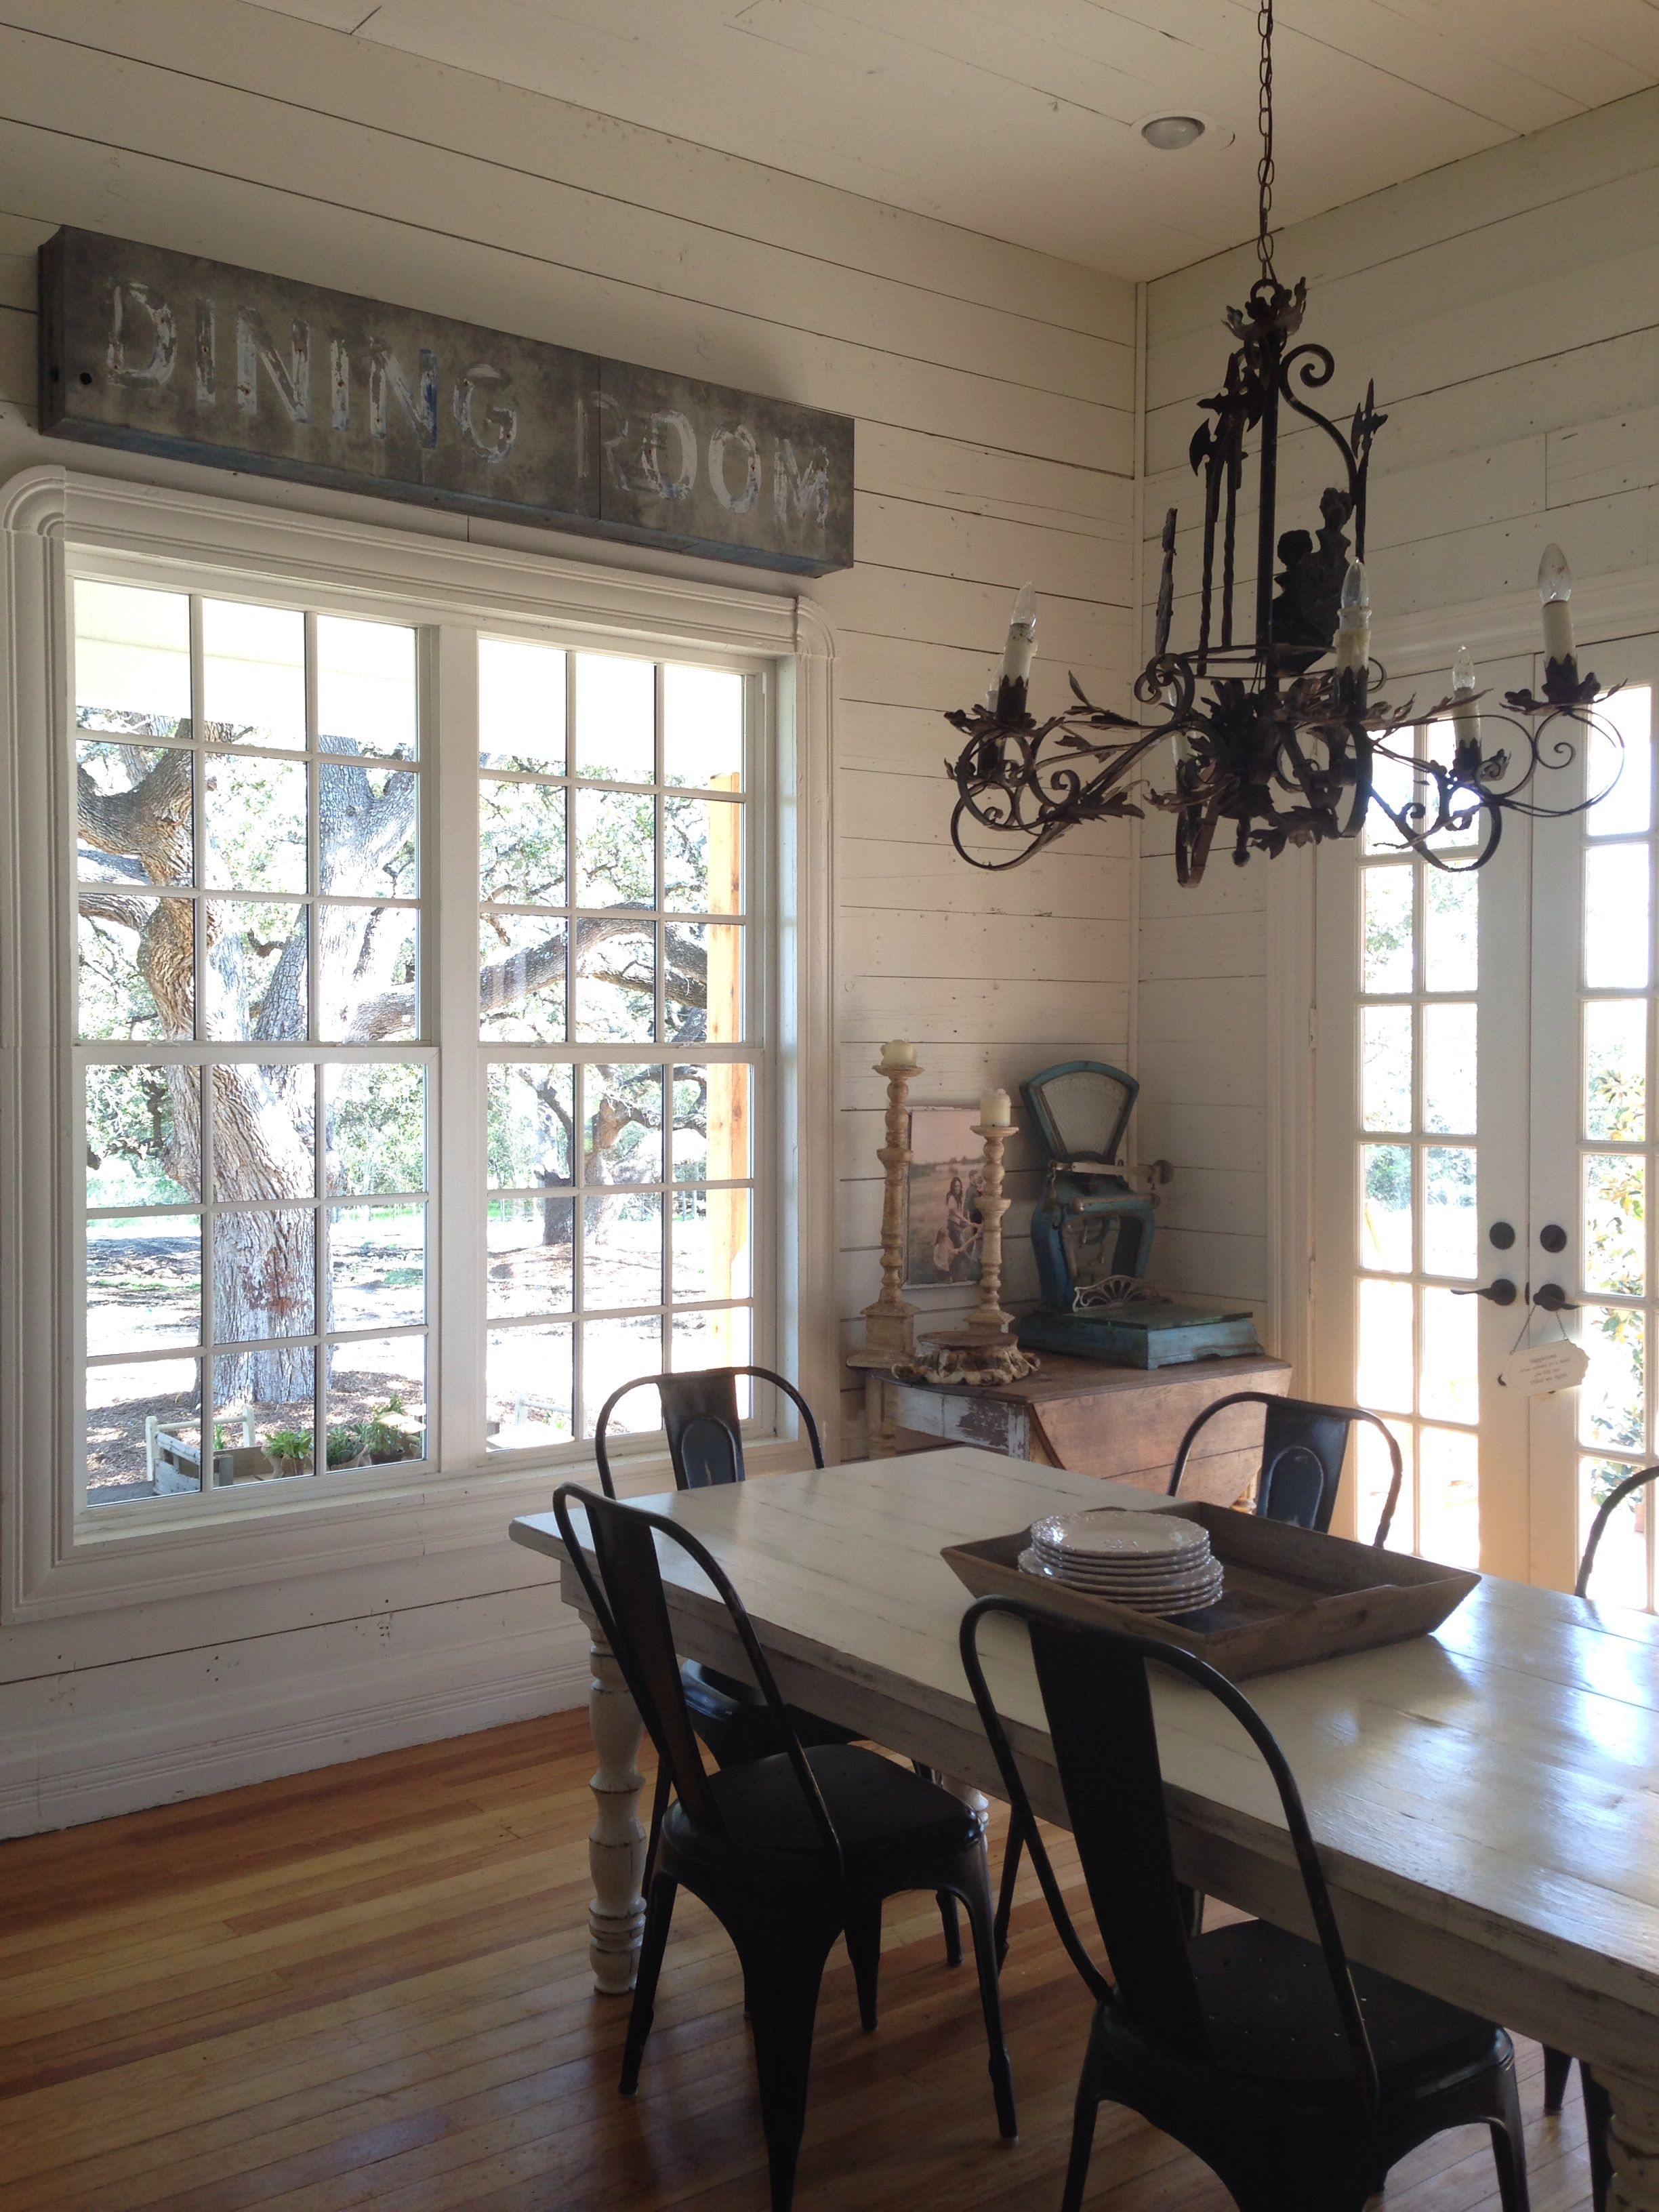 Old Sign In Farmhouse Kitchen Home Joanna Gaines Kitchen Table Fixer Upper